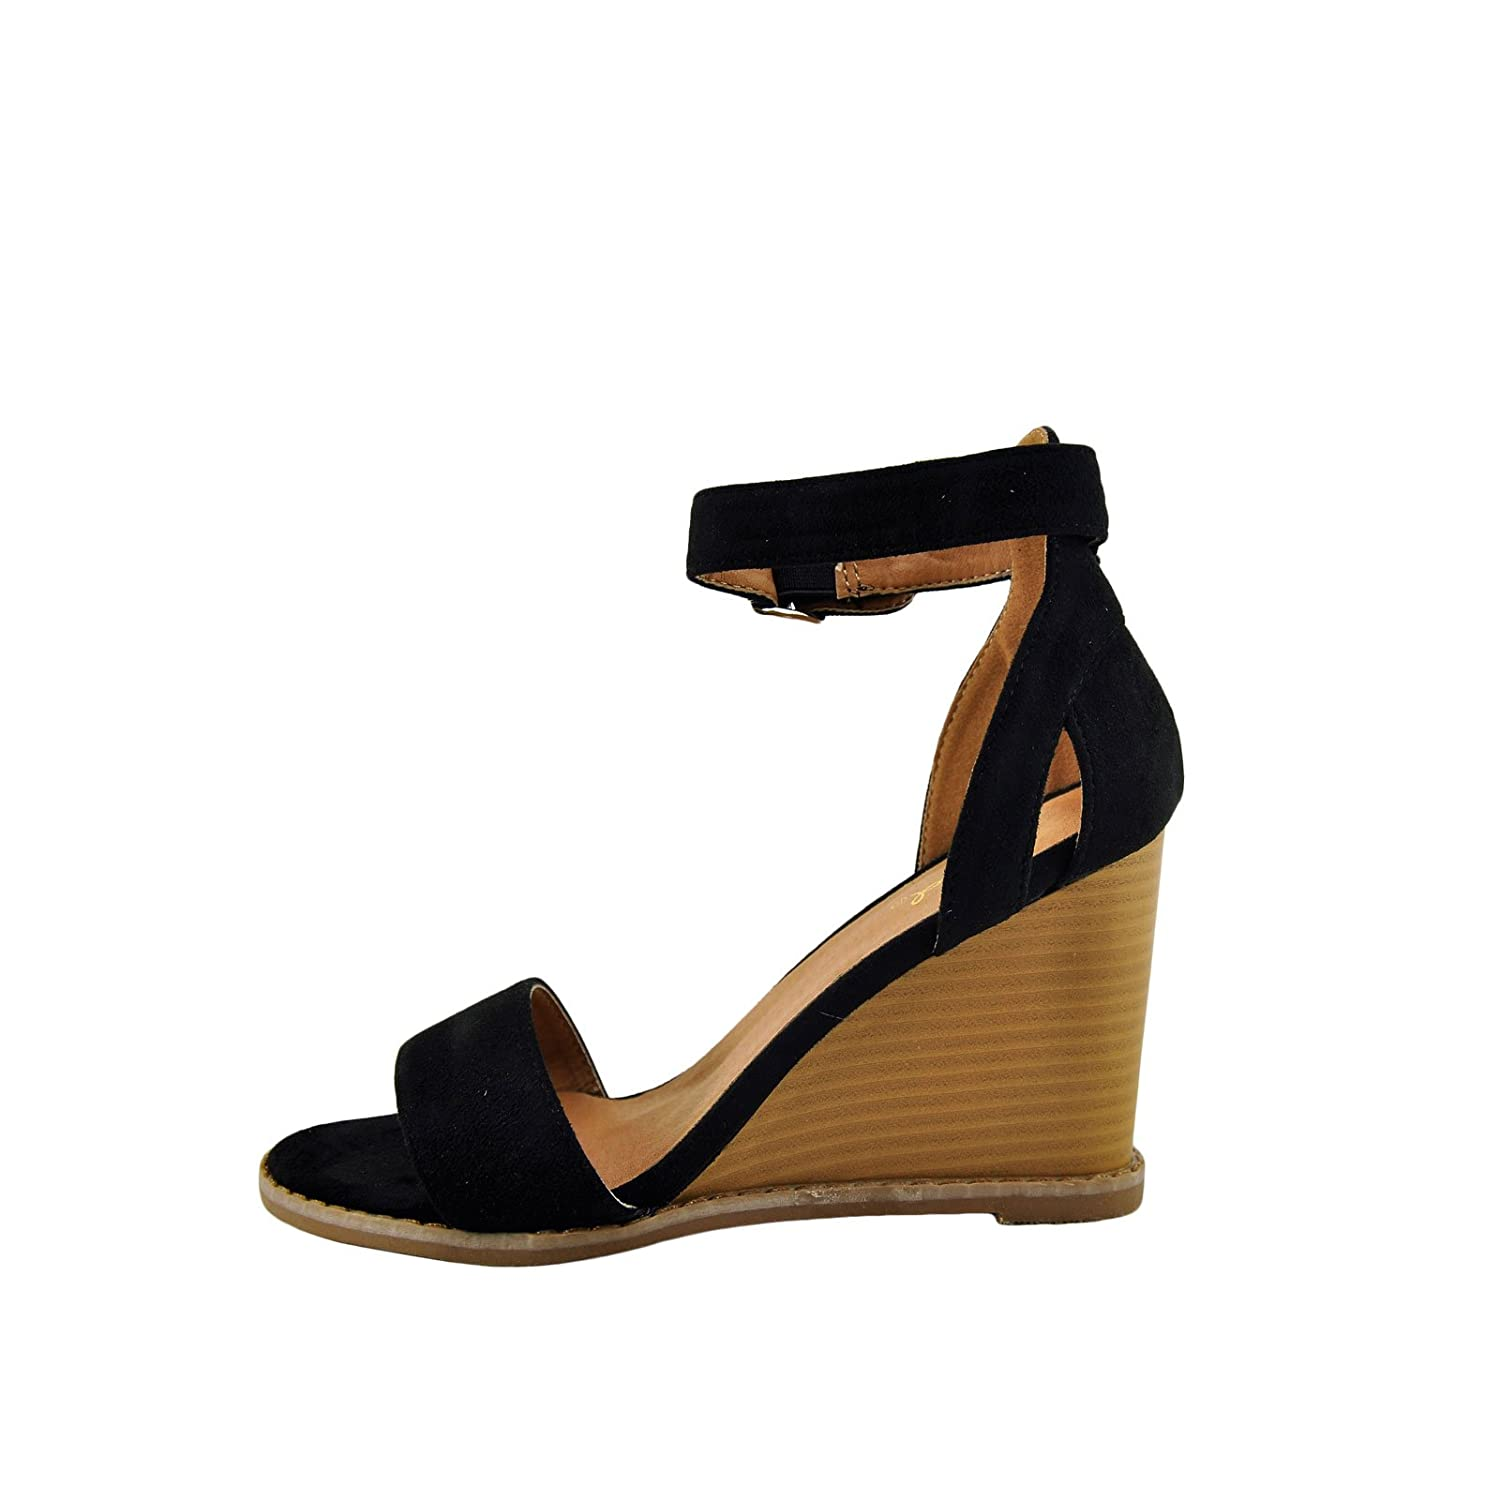 ce892090aeda3e ... Qupid Finley 01 Women s Open Toe Toe Toe Ankle Strap Stacked Wedge  B076VG986V 6 B( ...